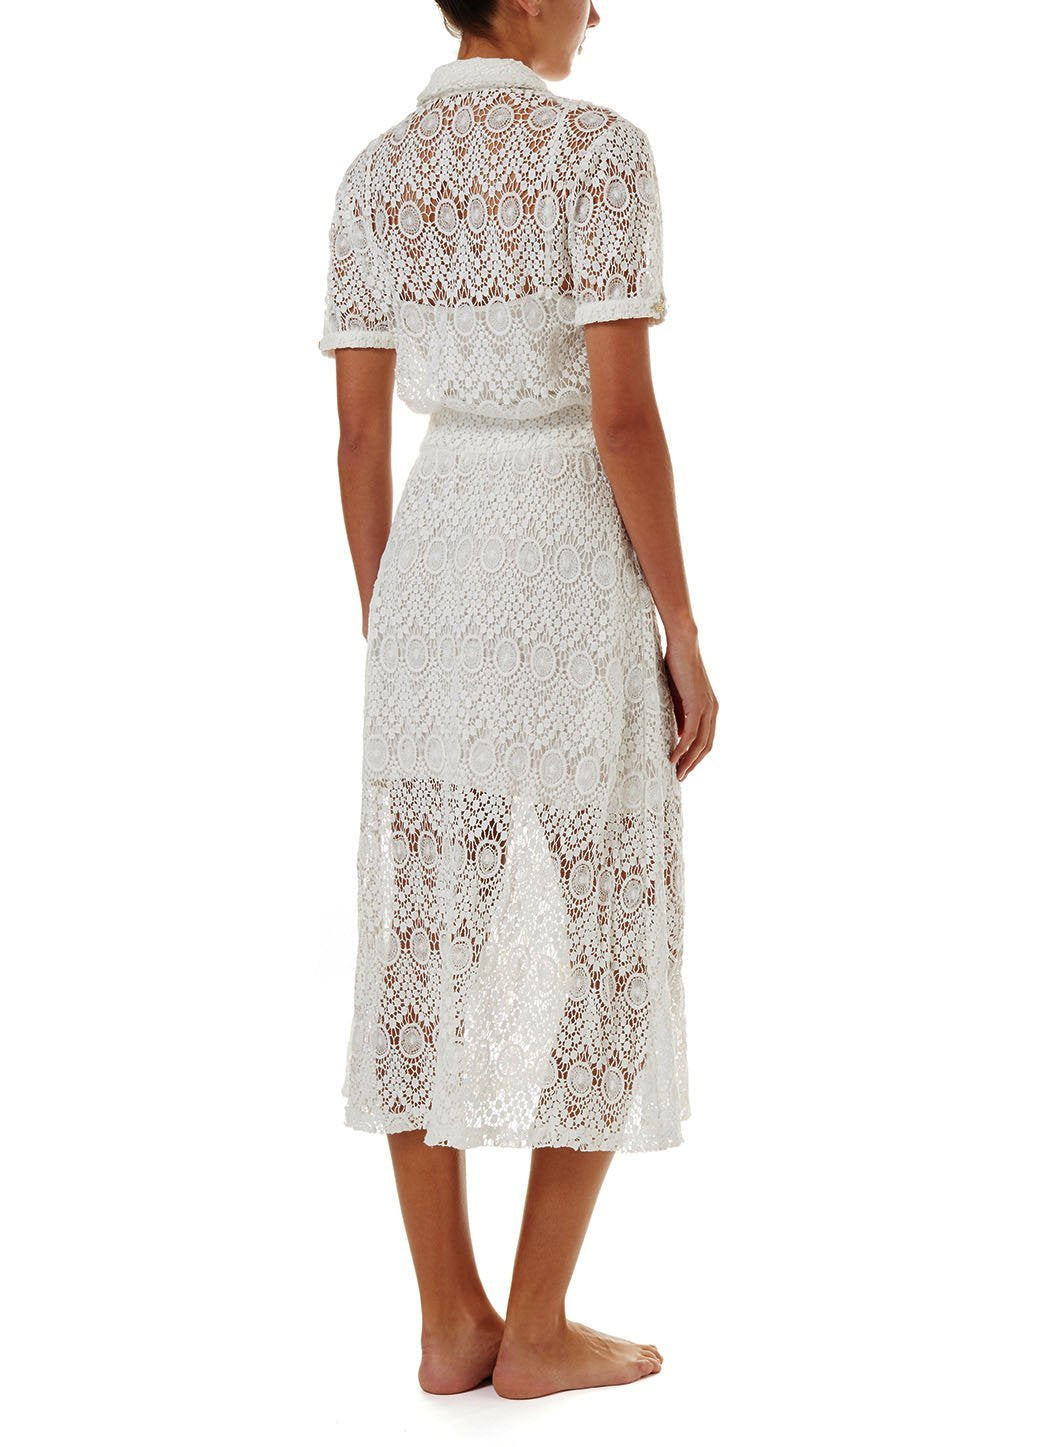 april white lace midi button down shirt dress 2019 B